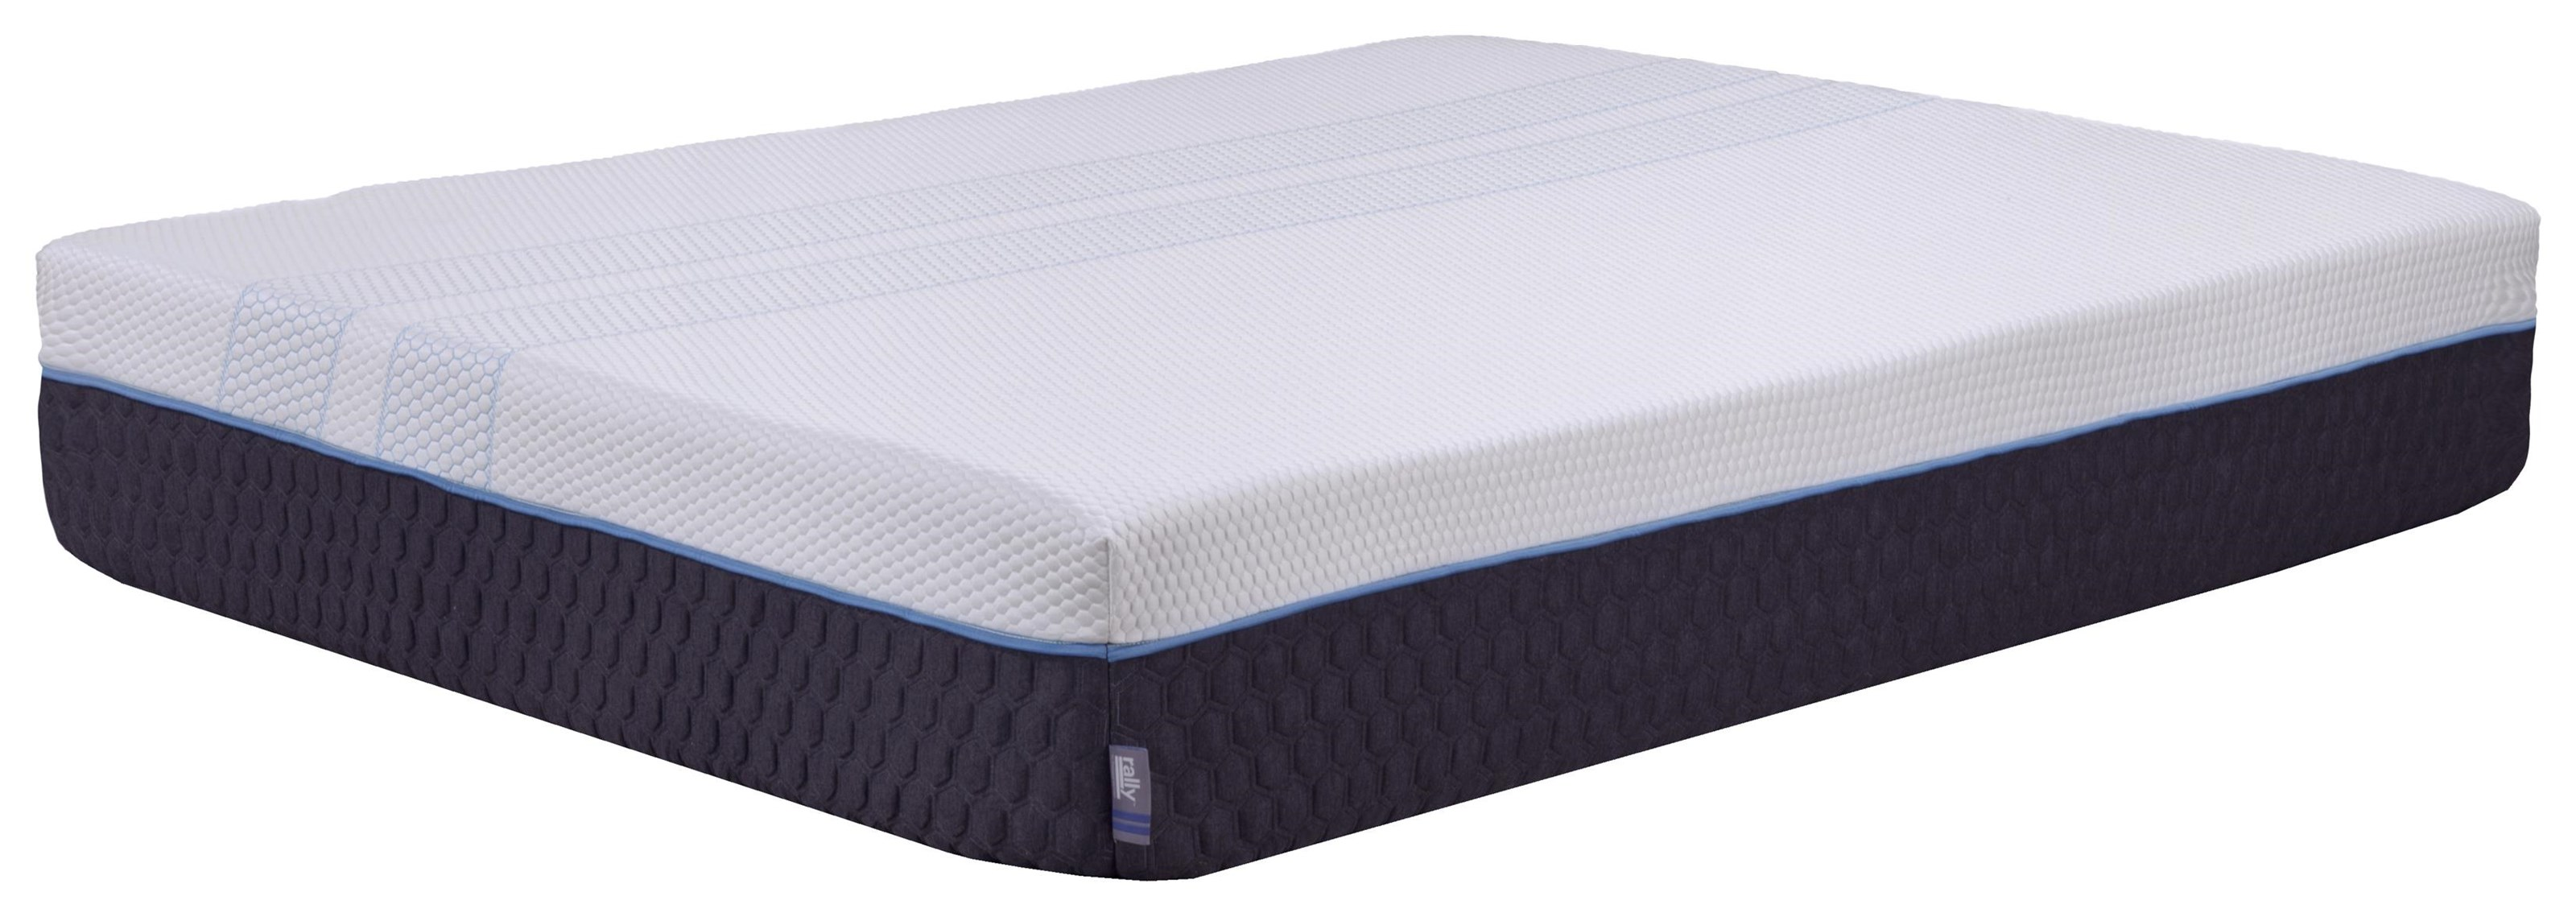 Rally Hybrid Cooling Firm Queen Firm Hybrid Cooling Mattress in a Box by Diamond Mattress at Beck's Furniture